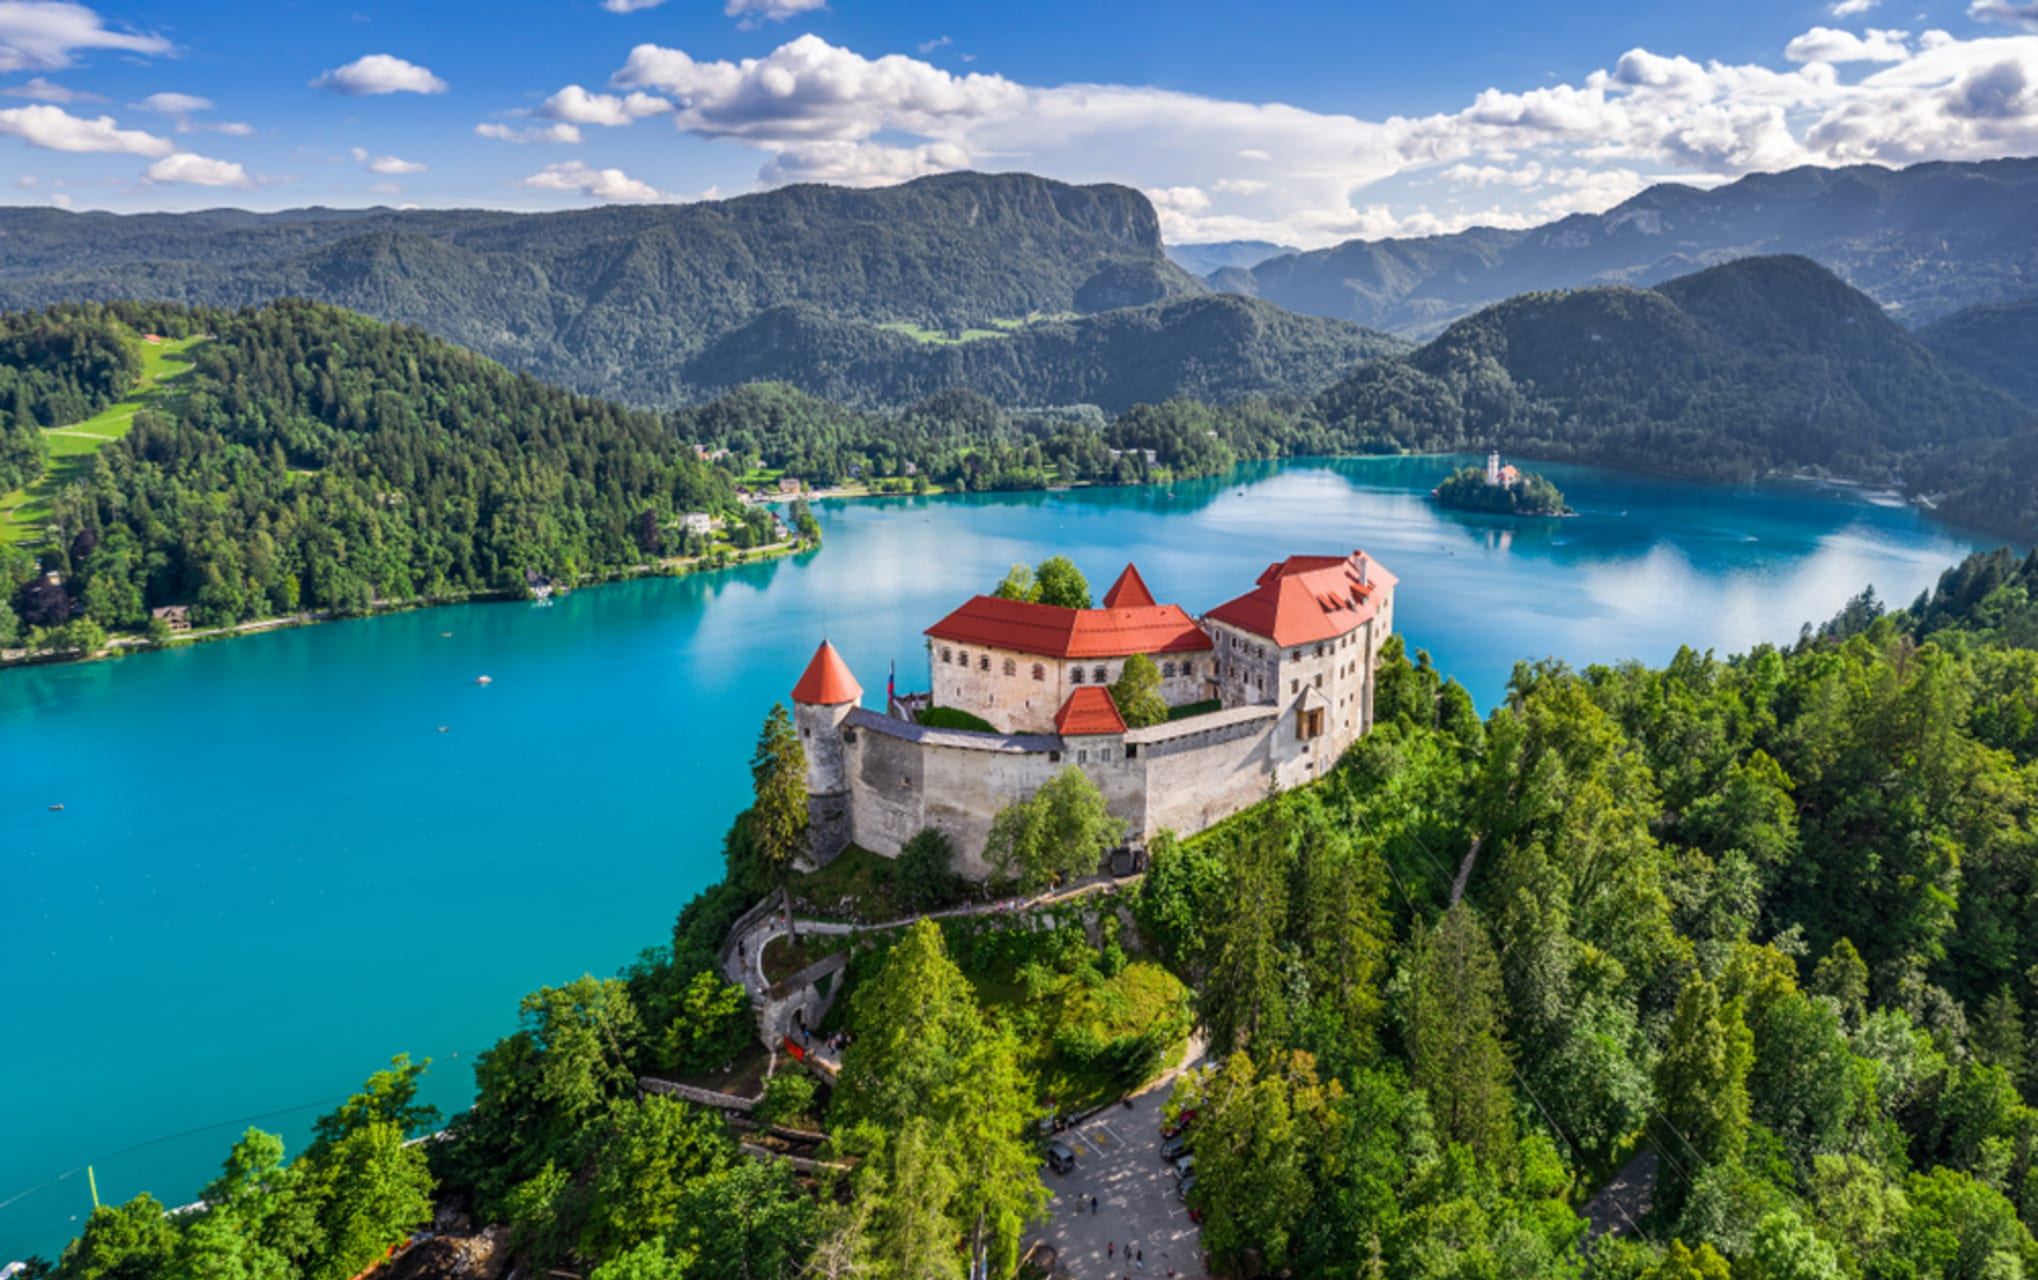 Bled - Bled, The Image of Paradise, Part One